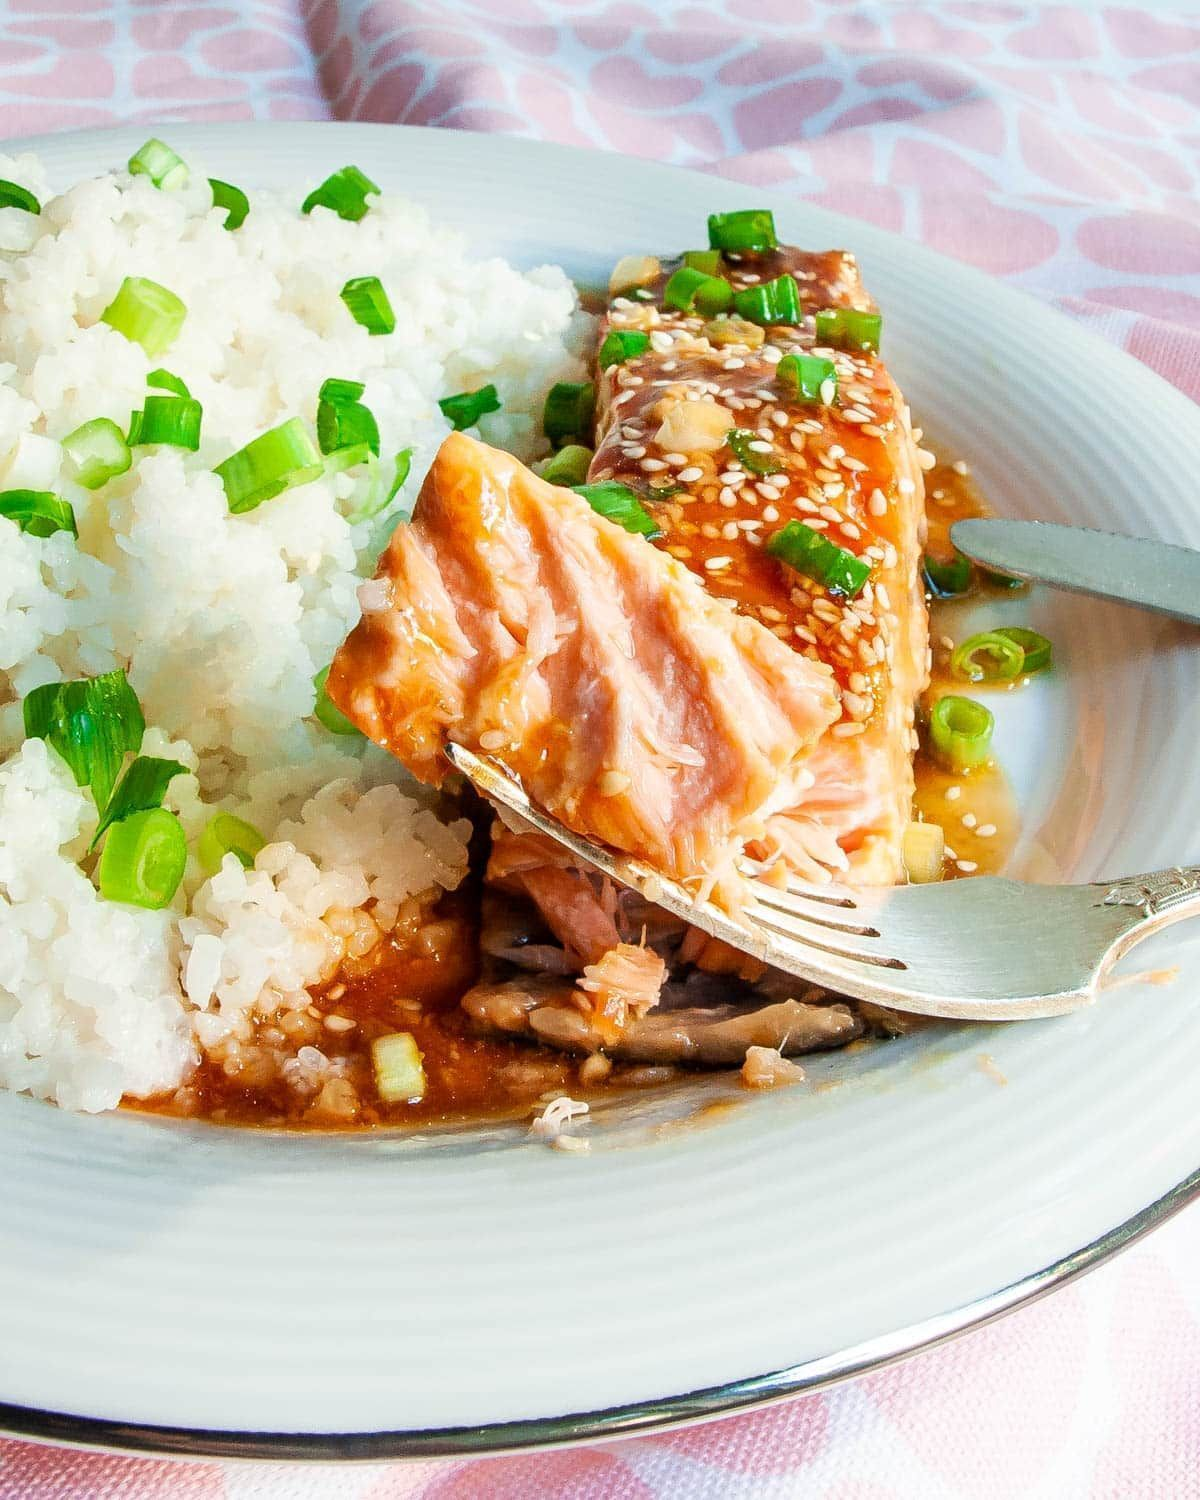 You will love this Baked Salmon Teriyaki! Ready in under 30 minutes, it's easy, delicious, full of Asian flavor and perfect for any busy weeknight. #salmon #teriyaki #salmonteriyaki #salmonteriyaki You will love this Baked Salmon Teriyaki! Ready in under 30 minutes, it's easy, delicious, full of Asian flavor and perfect for any busy weeknight. #salmon #teriyaki #salmonteriyaki #salmonteriyaki You will love this Baked Salmon Teriyaki! Ready in under 30 minutes, it's easy, delicious, full of Asian #salmonteriyaki